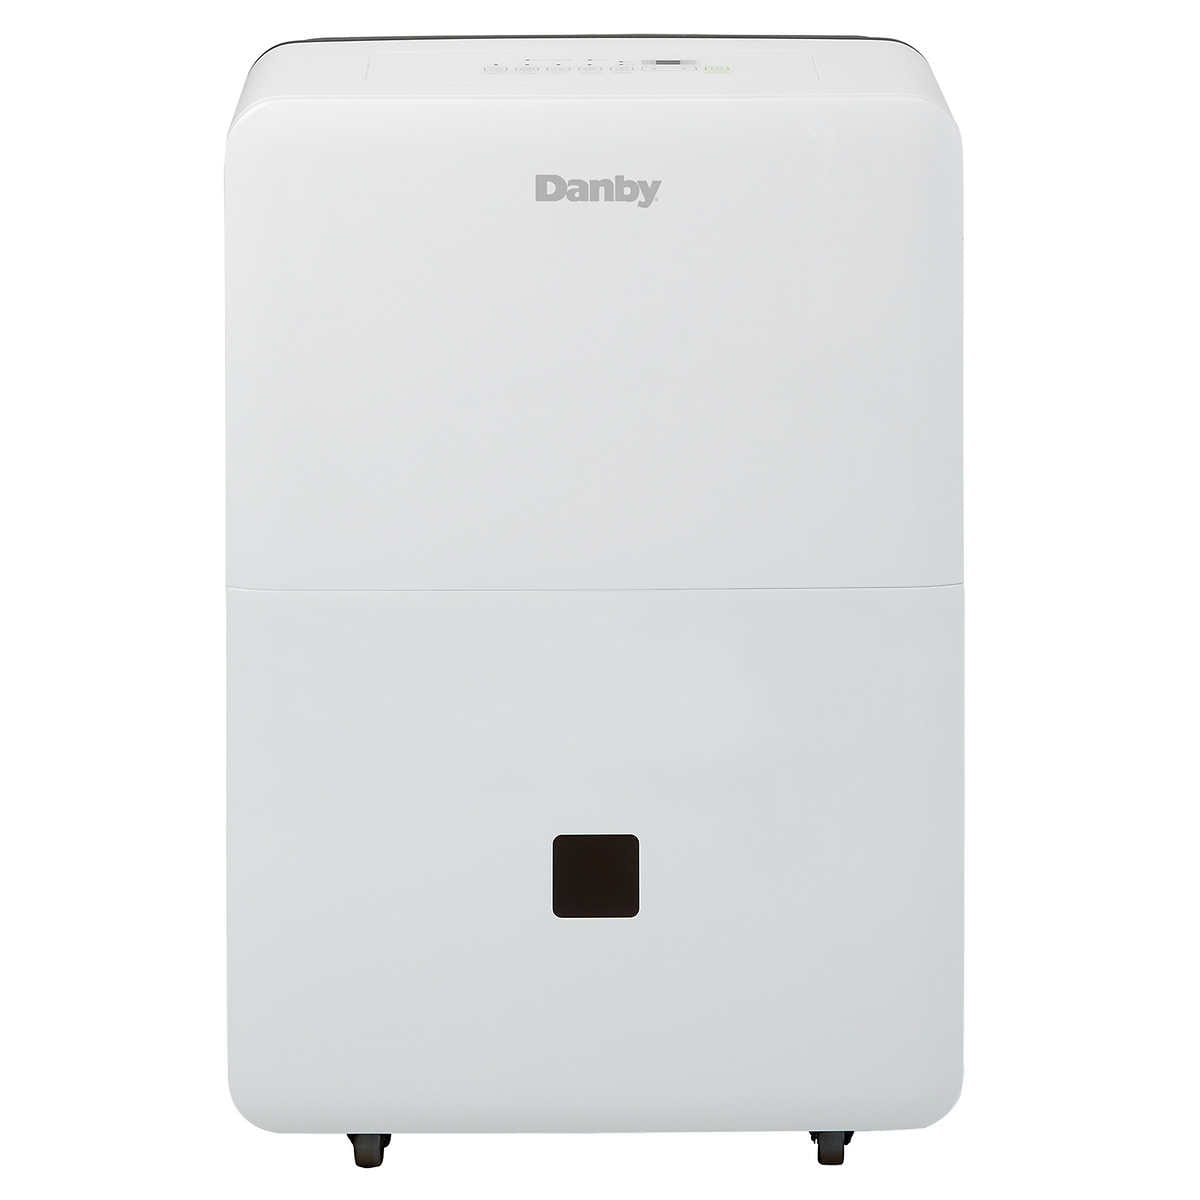 Danby 50 Pint Dehumidifier with Pump $139.99 ($129.99 In Store YMMV)